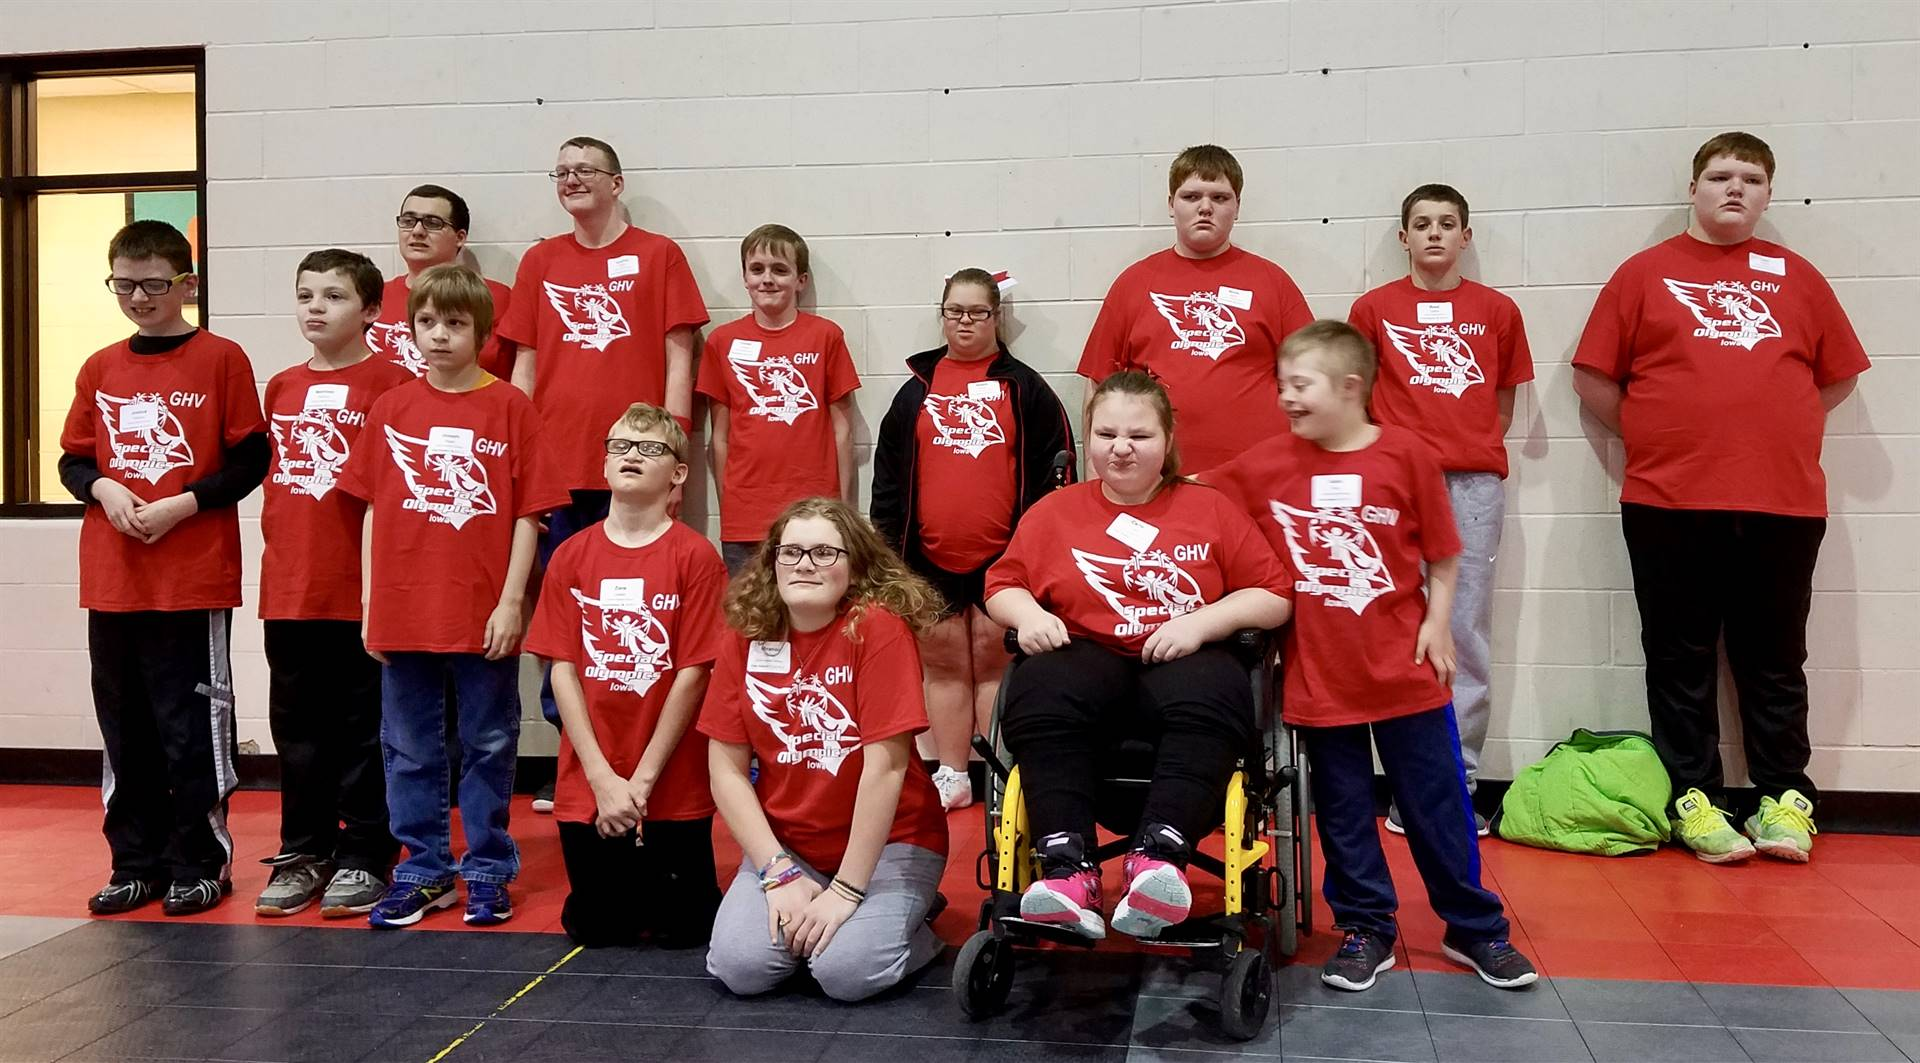 Students in red GHV Special Olympic t-shirts standing together for a photo